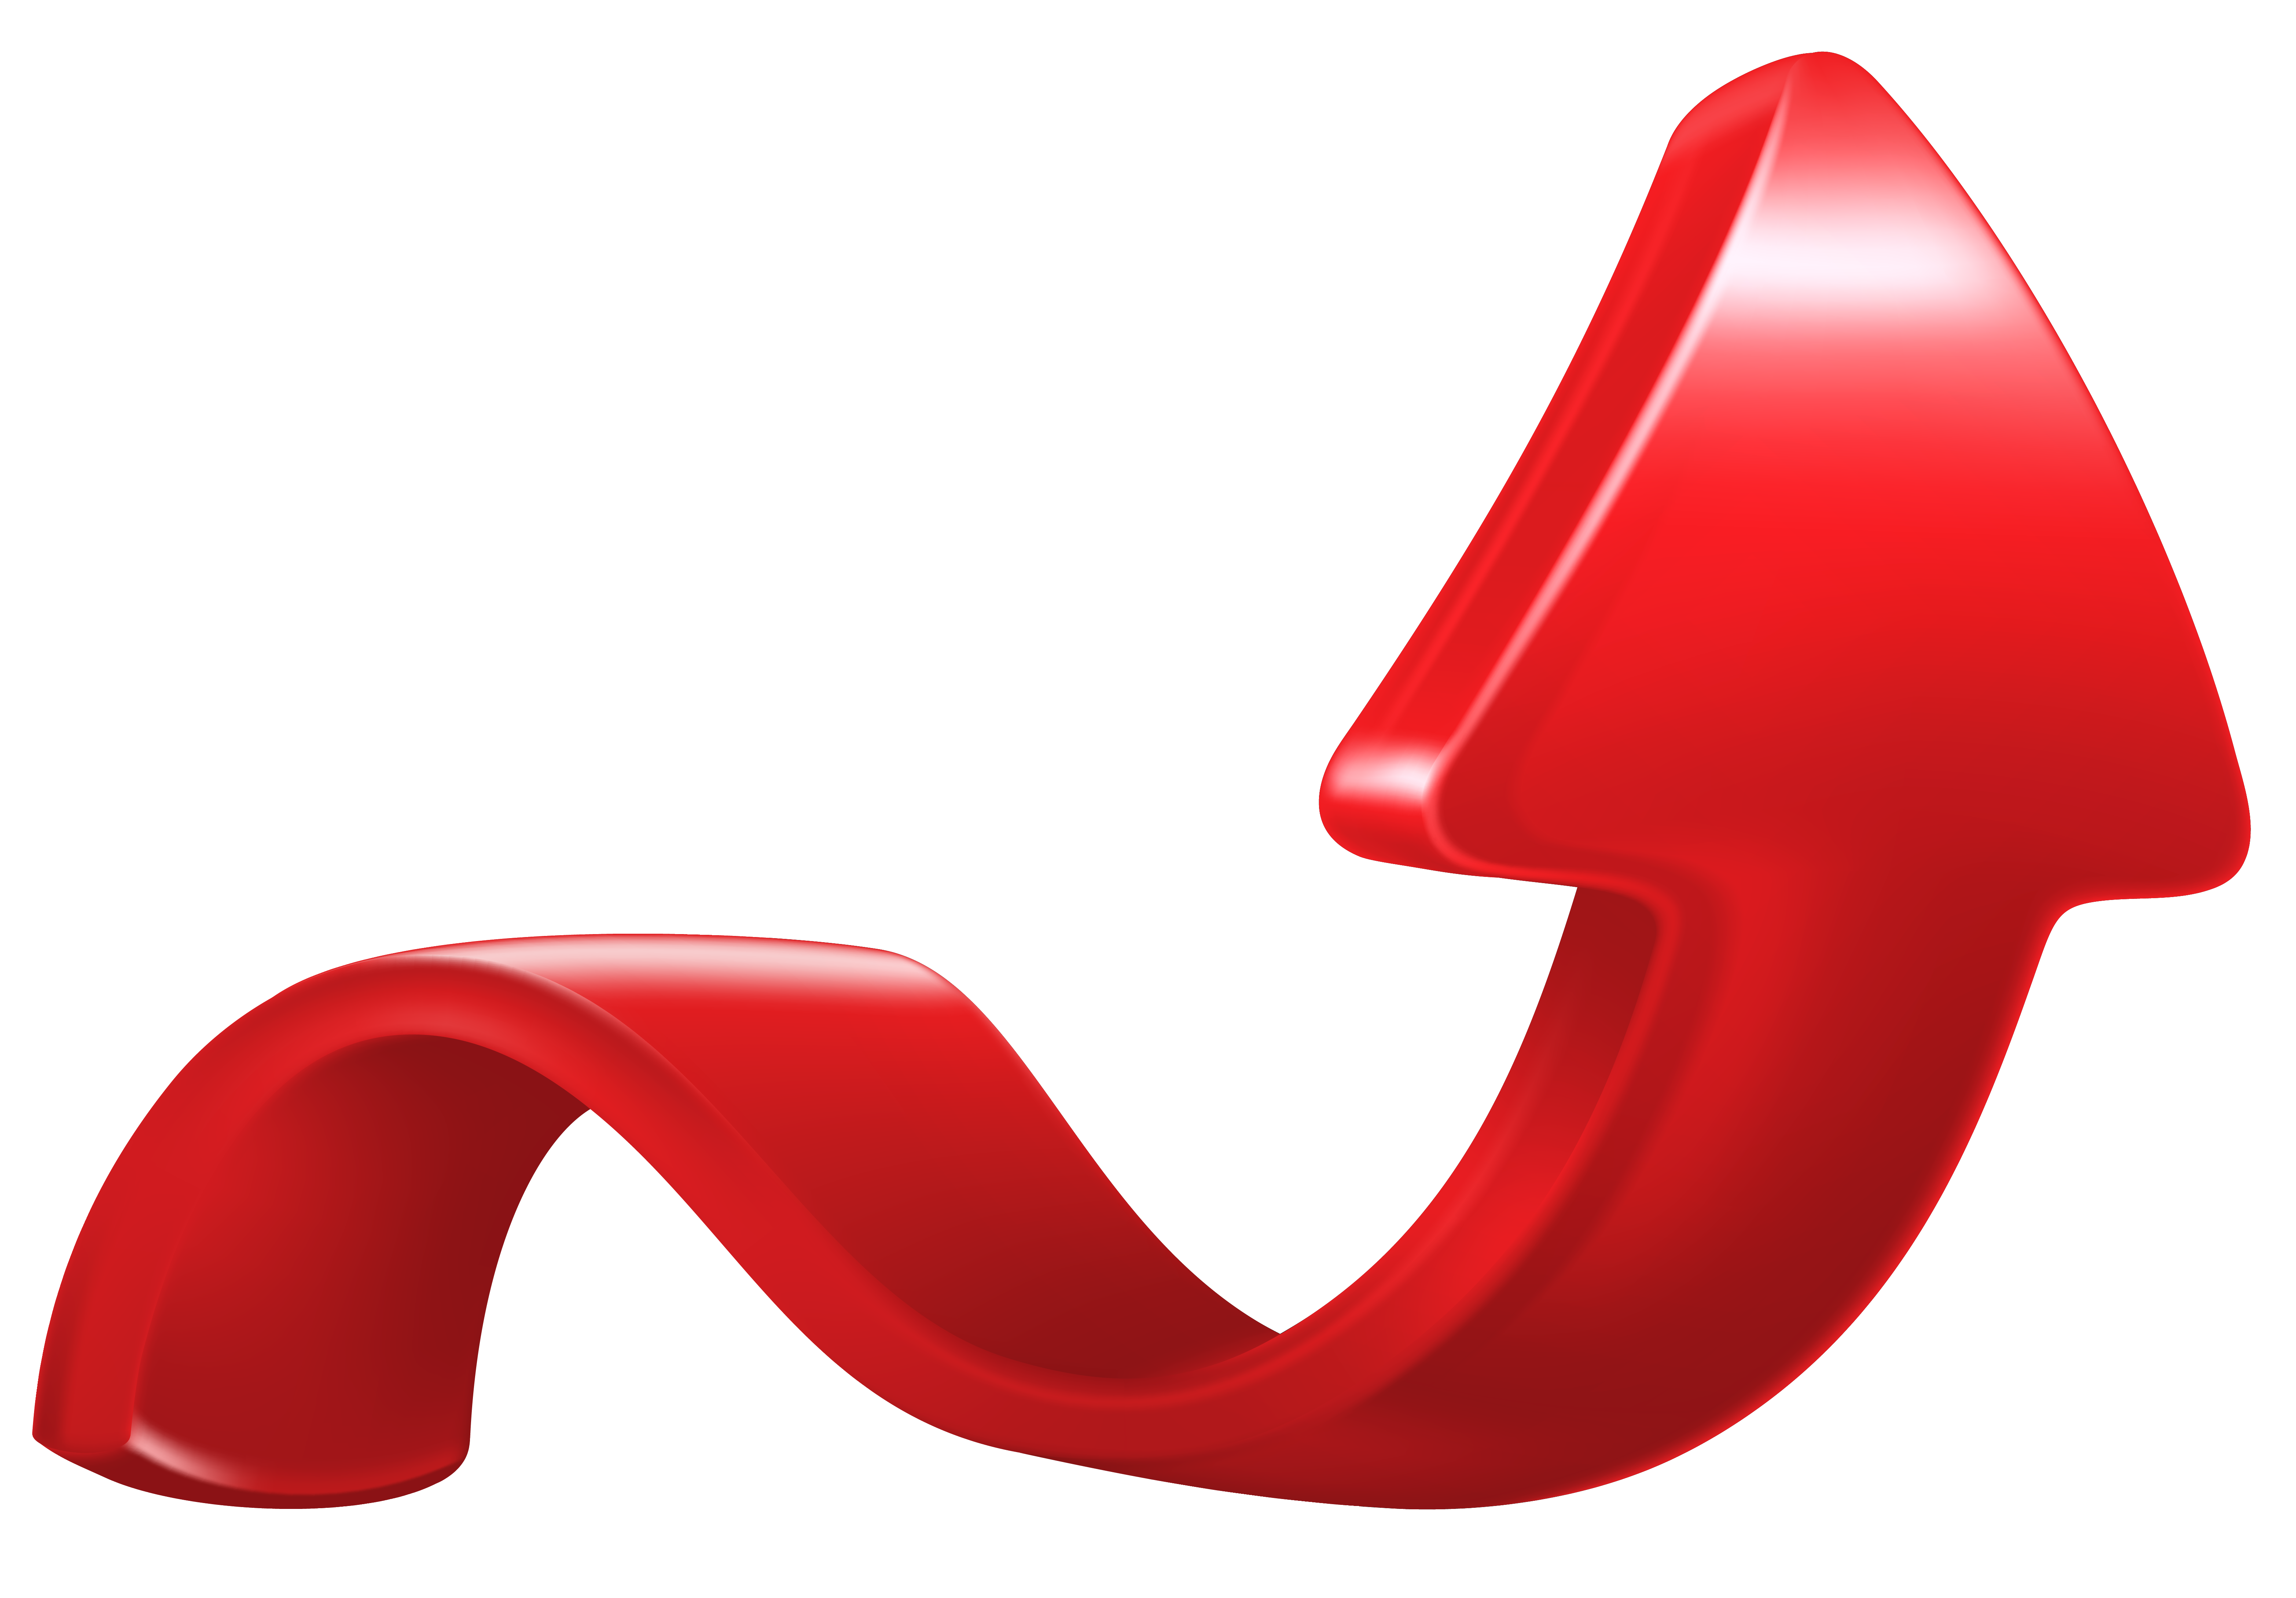 Increase Arrow Red PNG Clip Art Image.